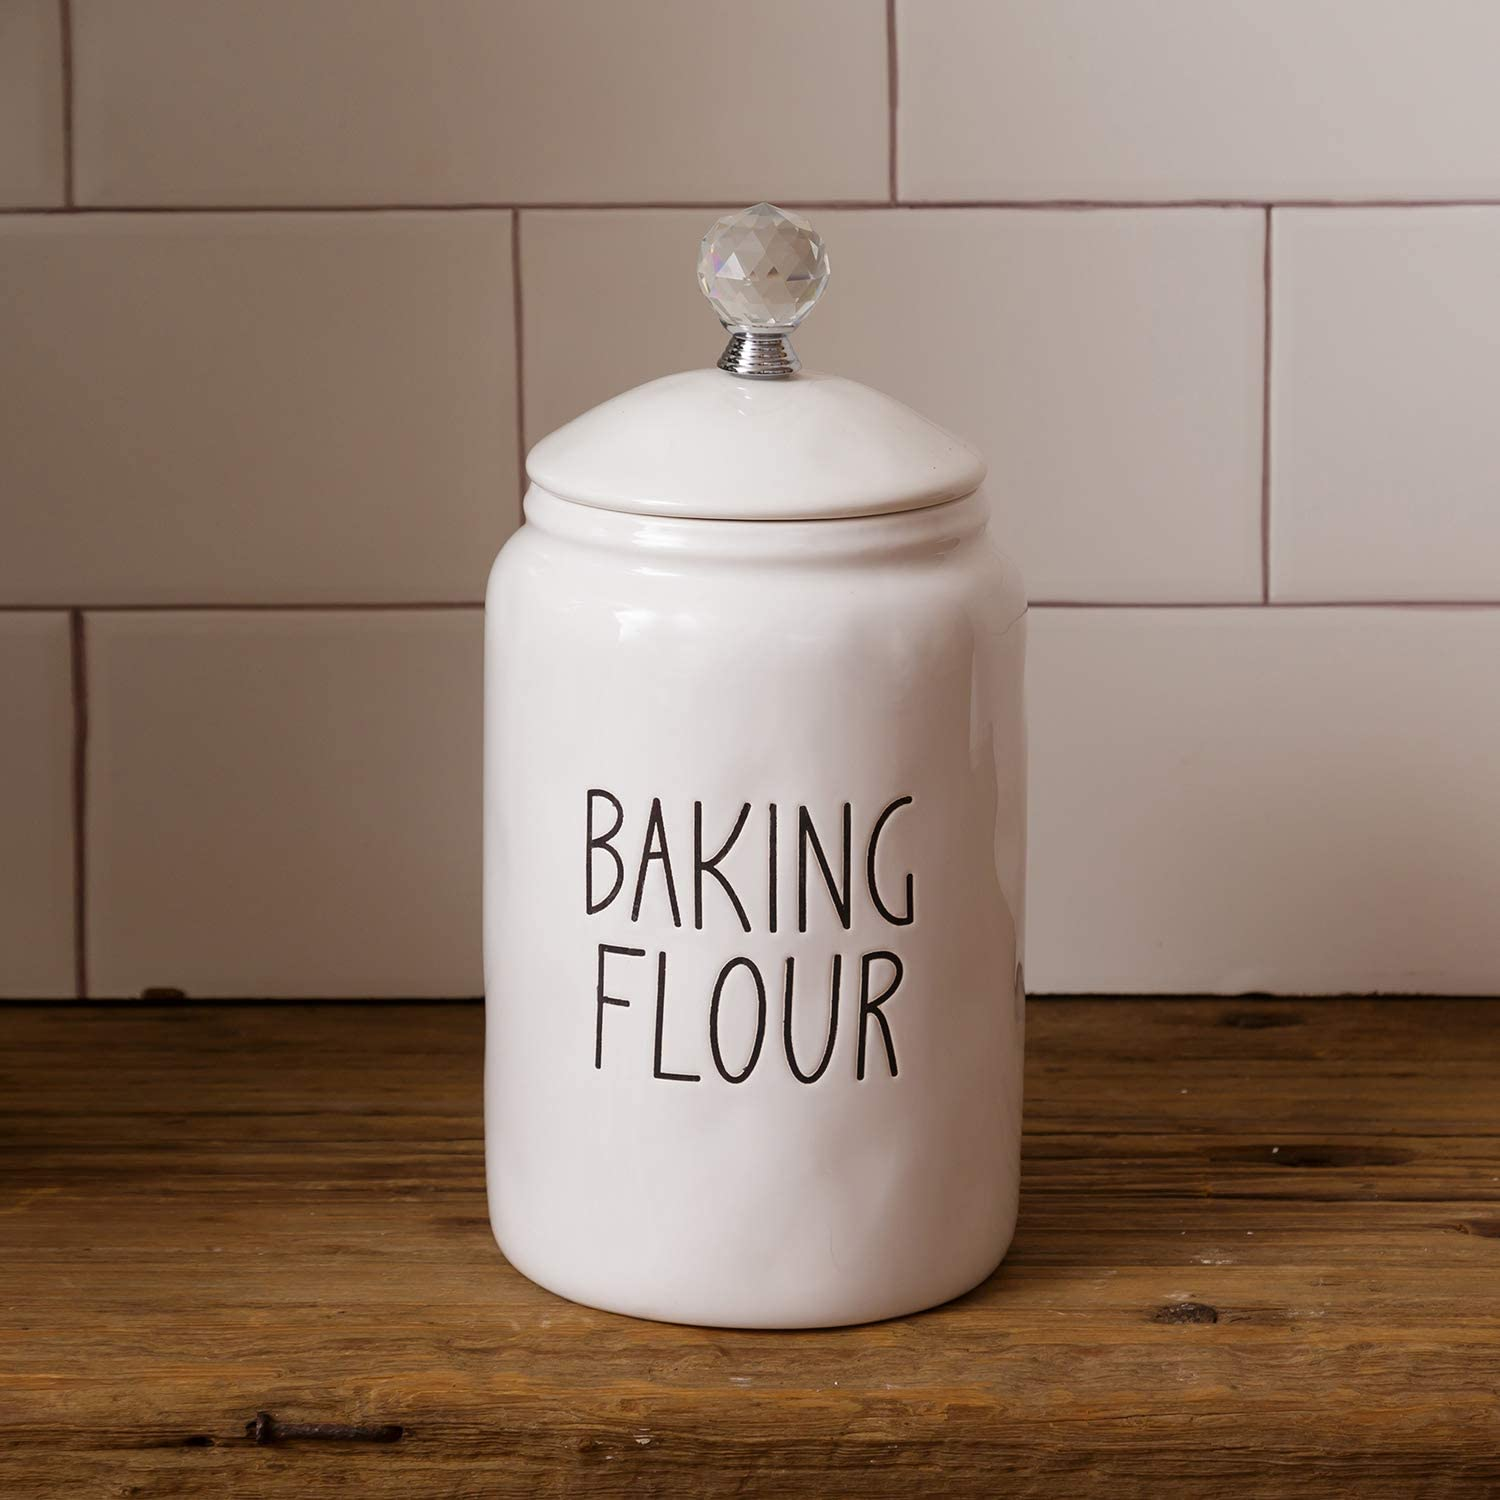 White Ceramic Baking Flour Canister with Lid and Crystal Handle - Rustic Kitchen Counter Storage Container - Farmhouse Home Decor